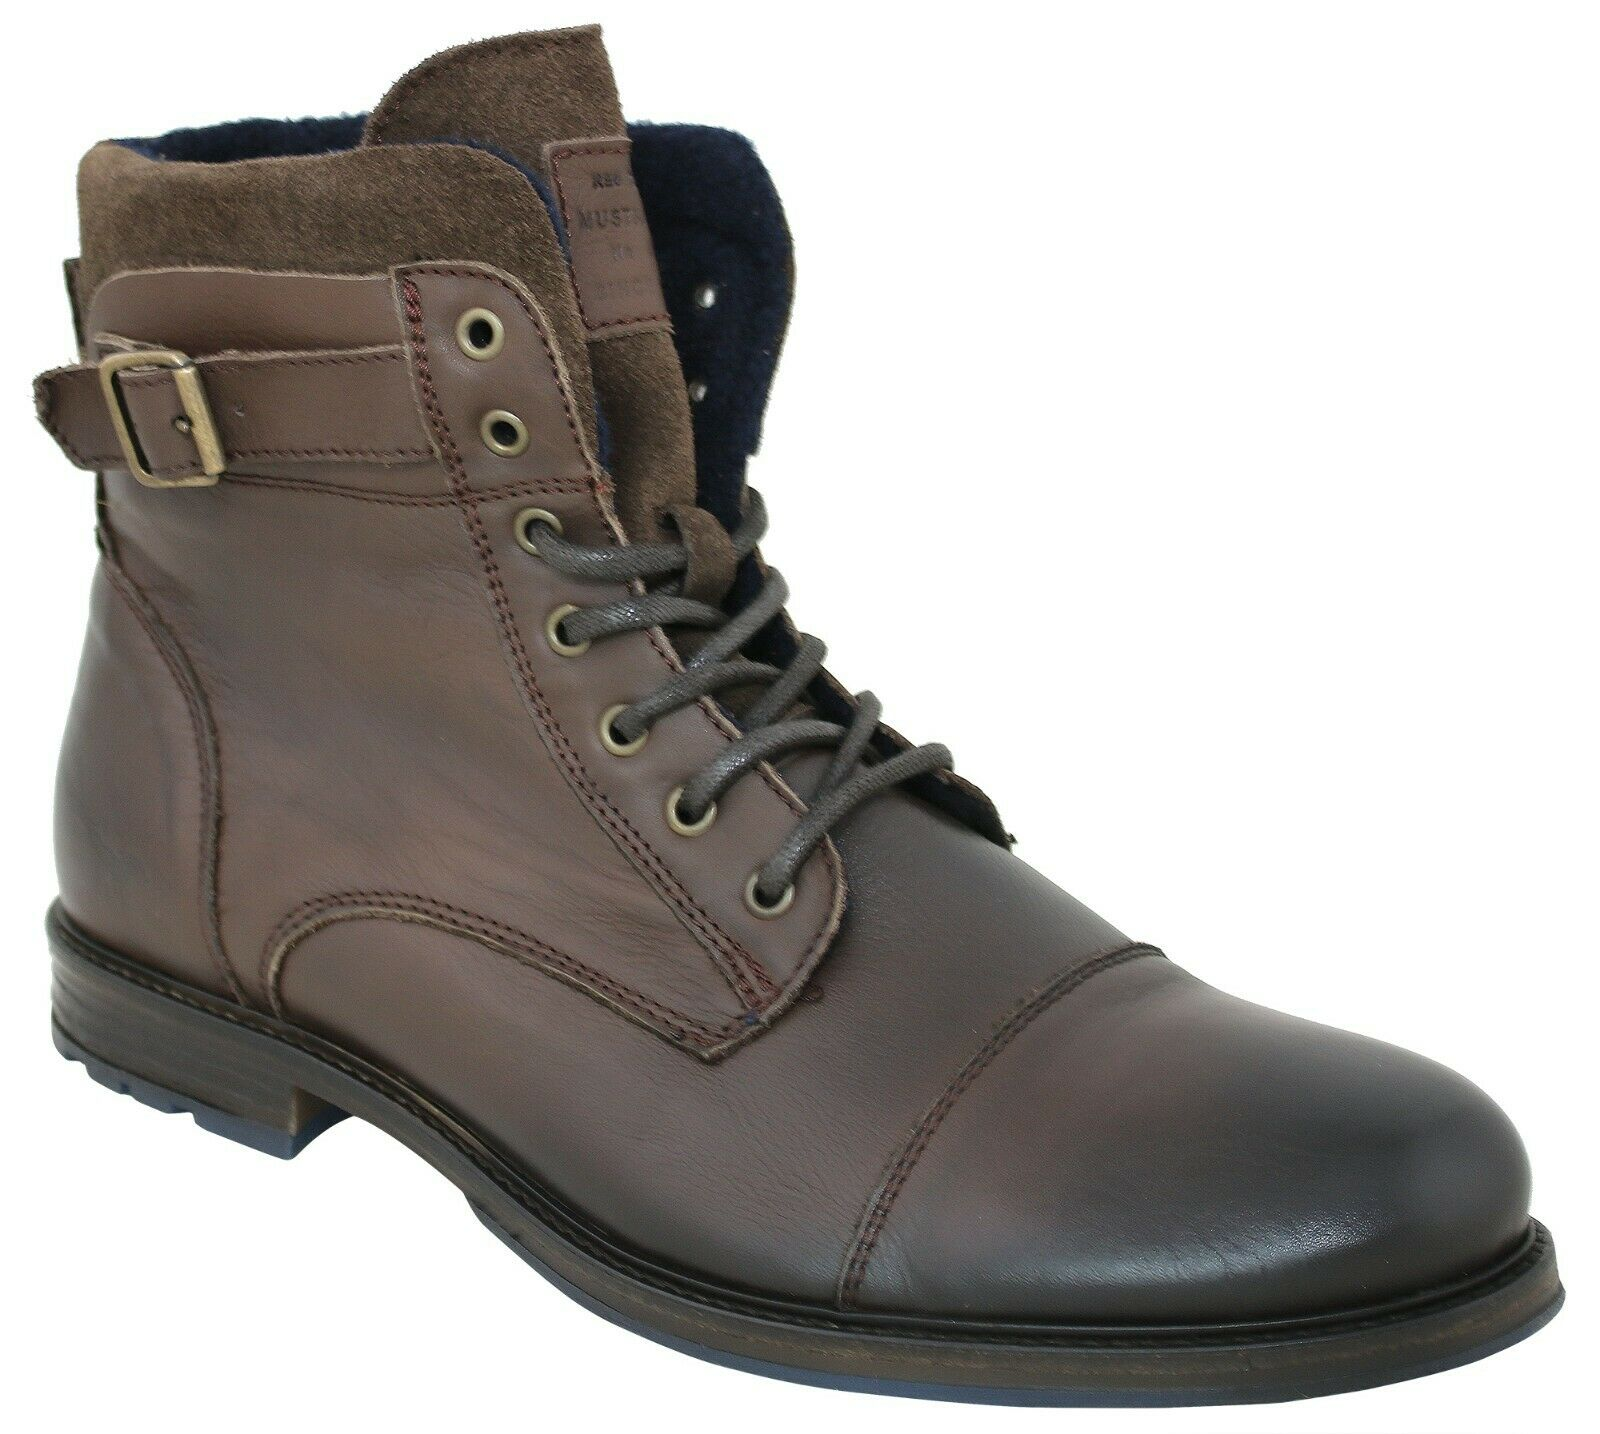 Mustang Hommes A Lacets-bottes bottes 4890-505-32